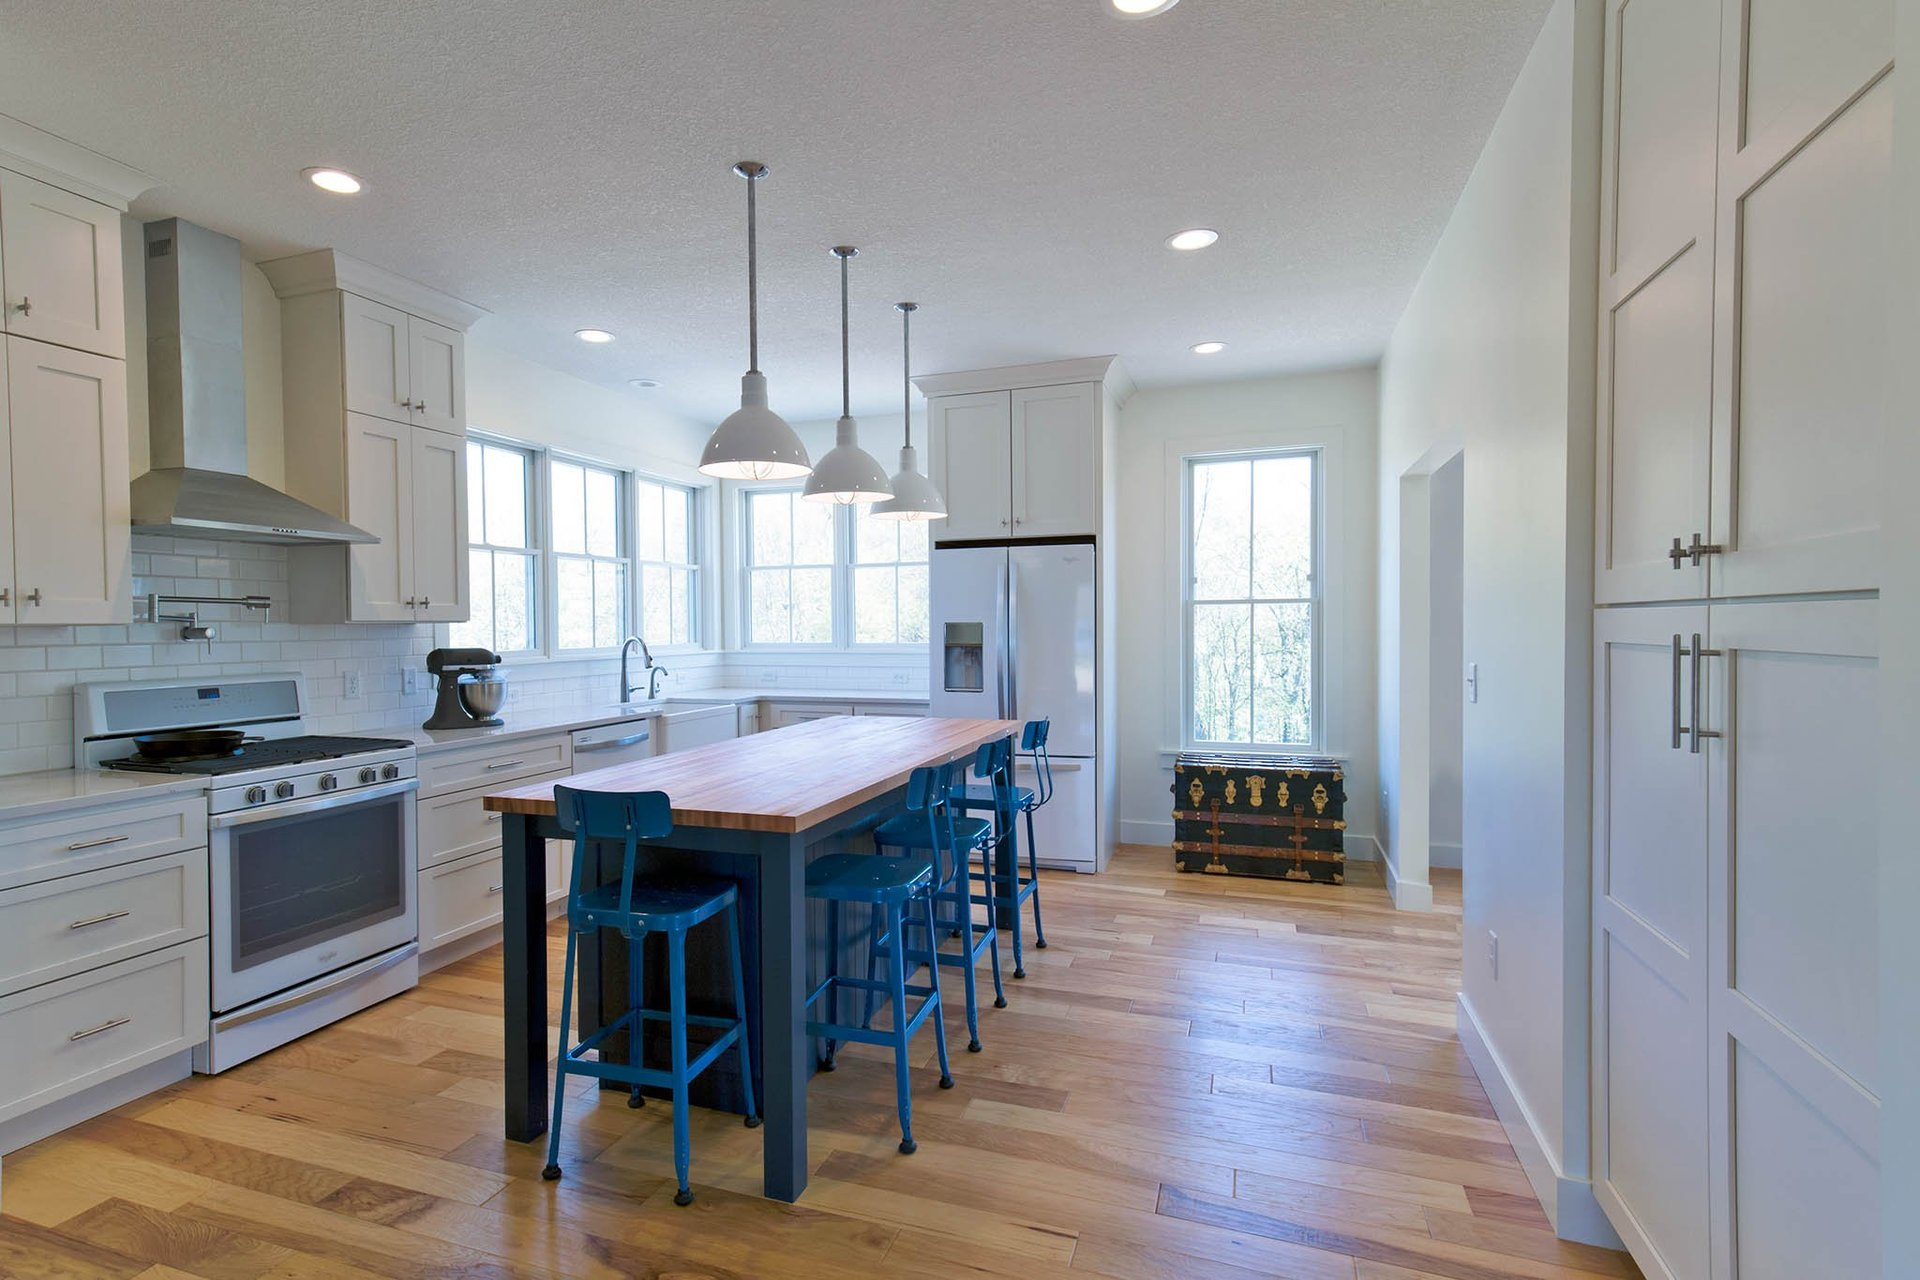 Kitchen Remodeling | Countertop Sale | New Ulm, MN